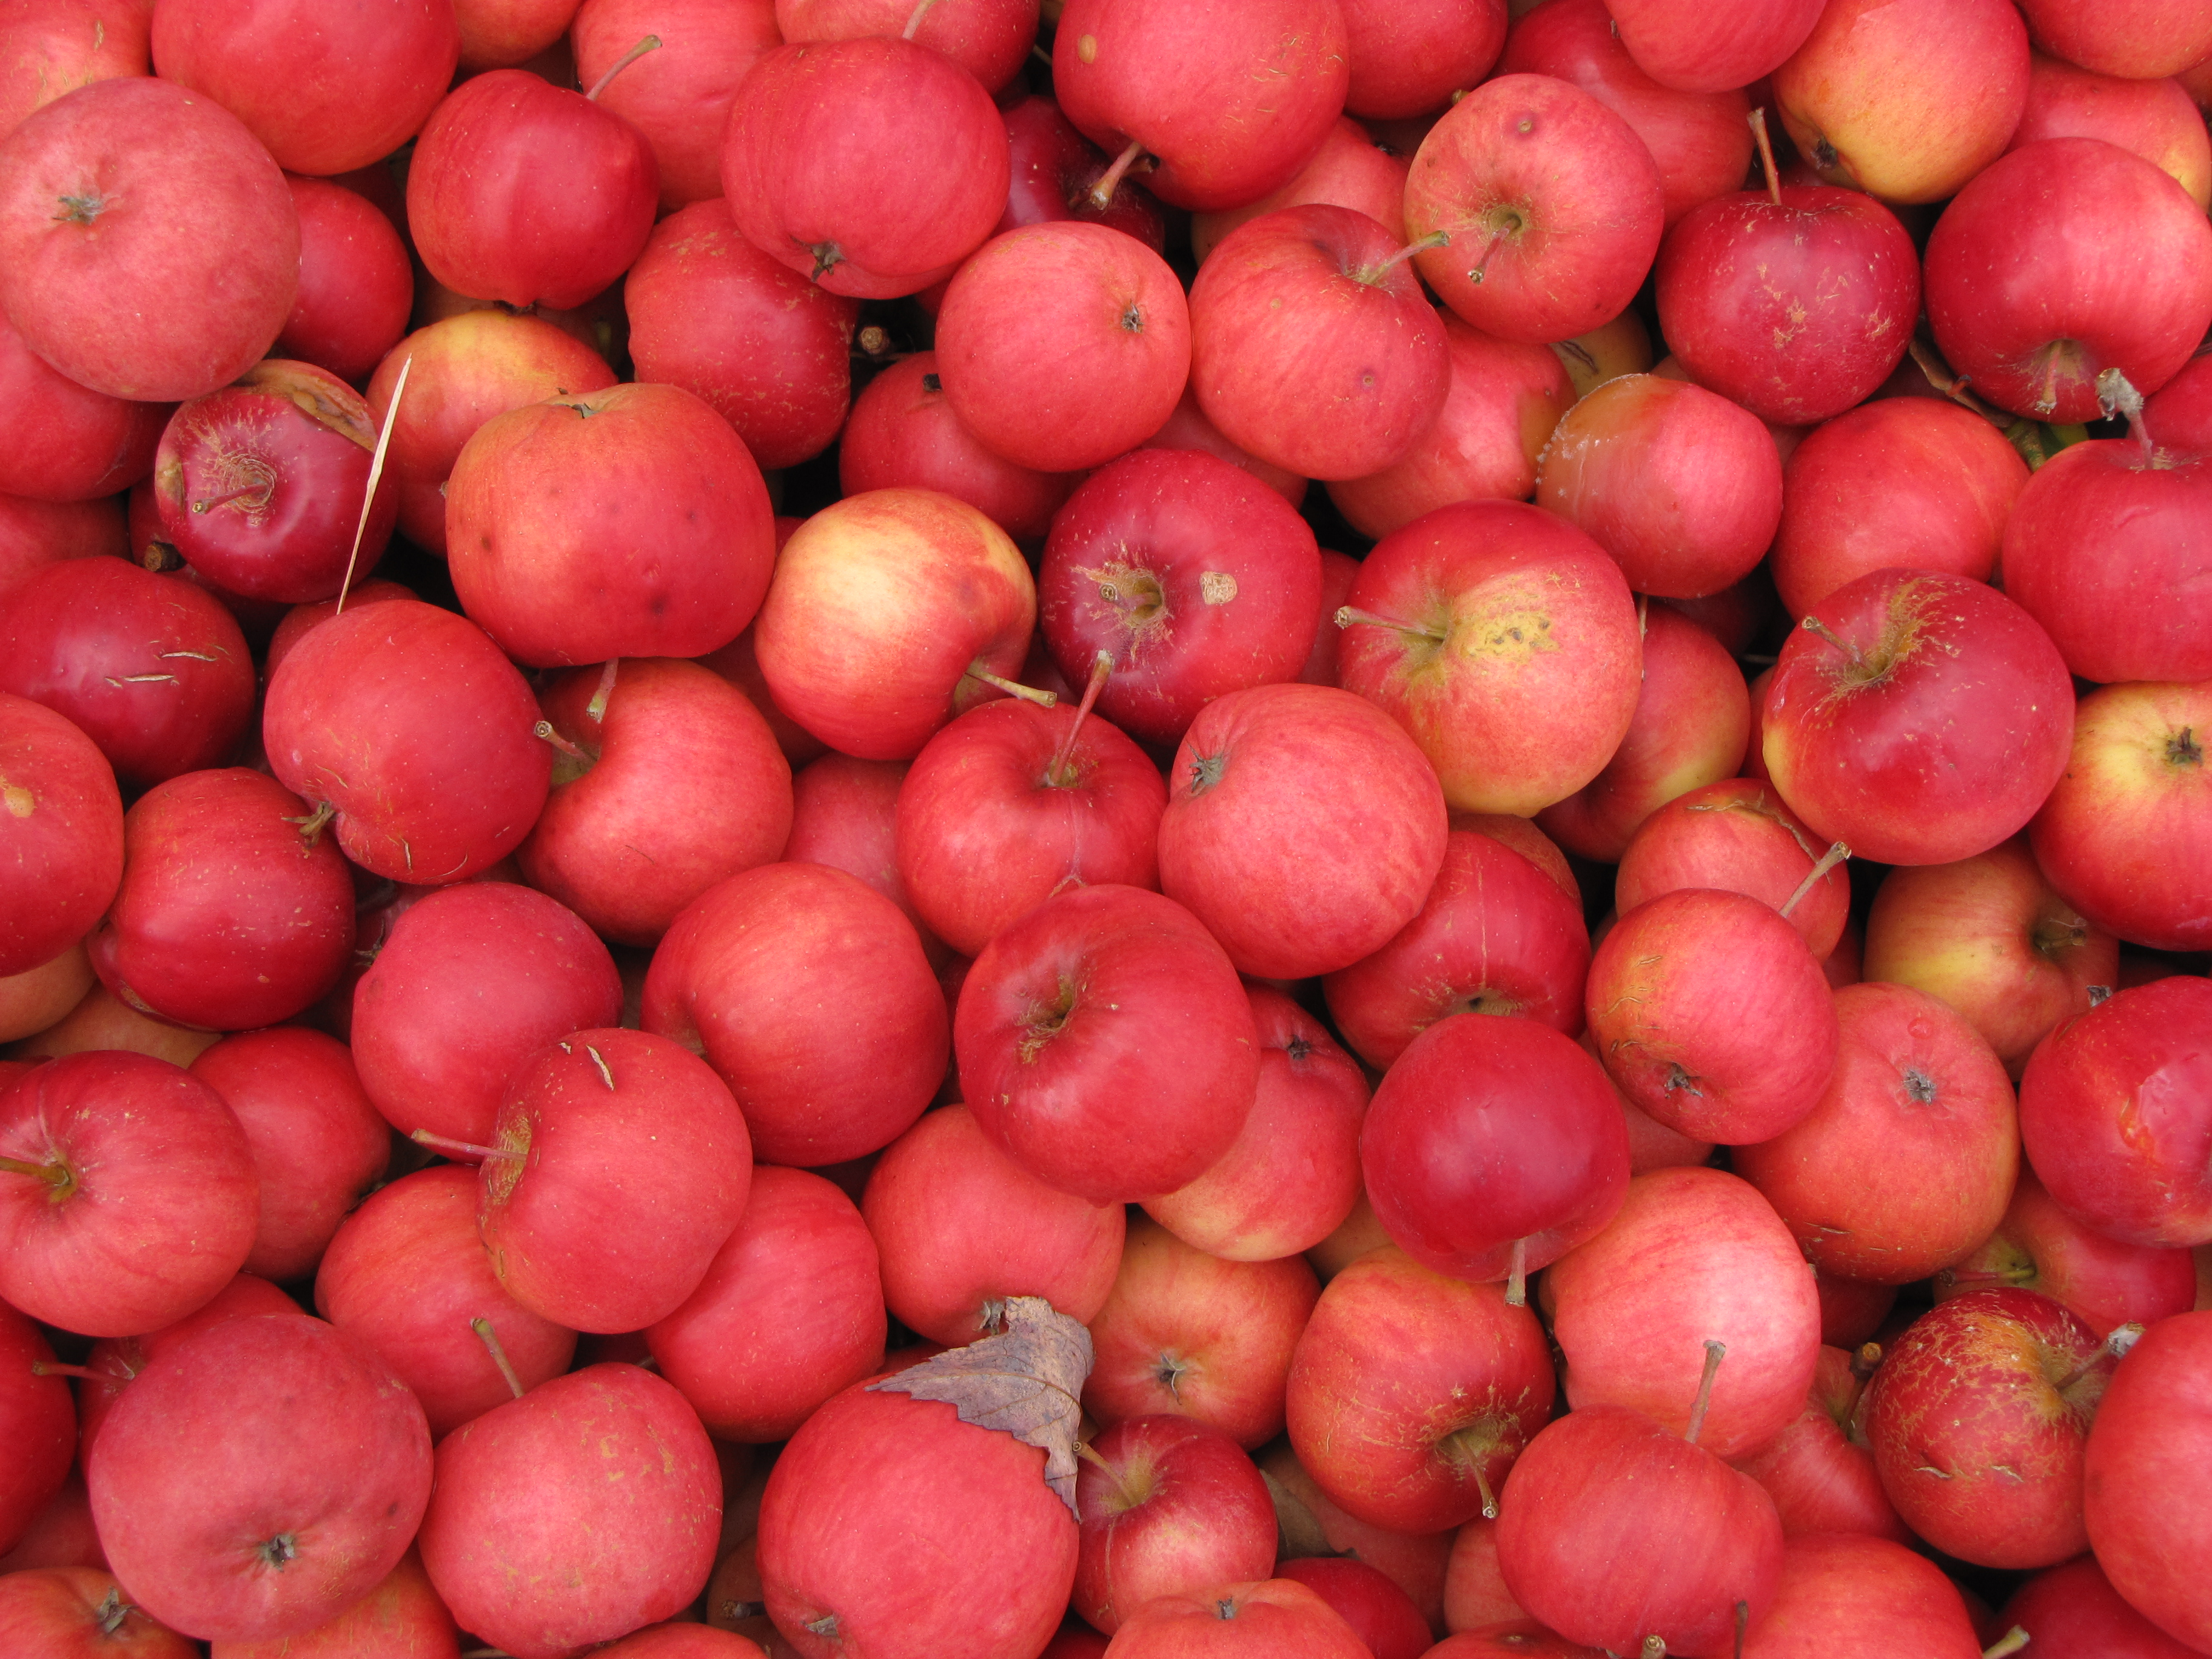 New England Apple Cider Days | New England Apples